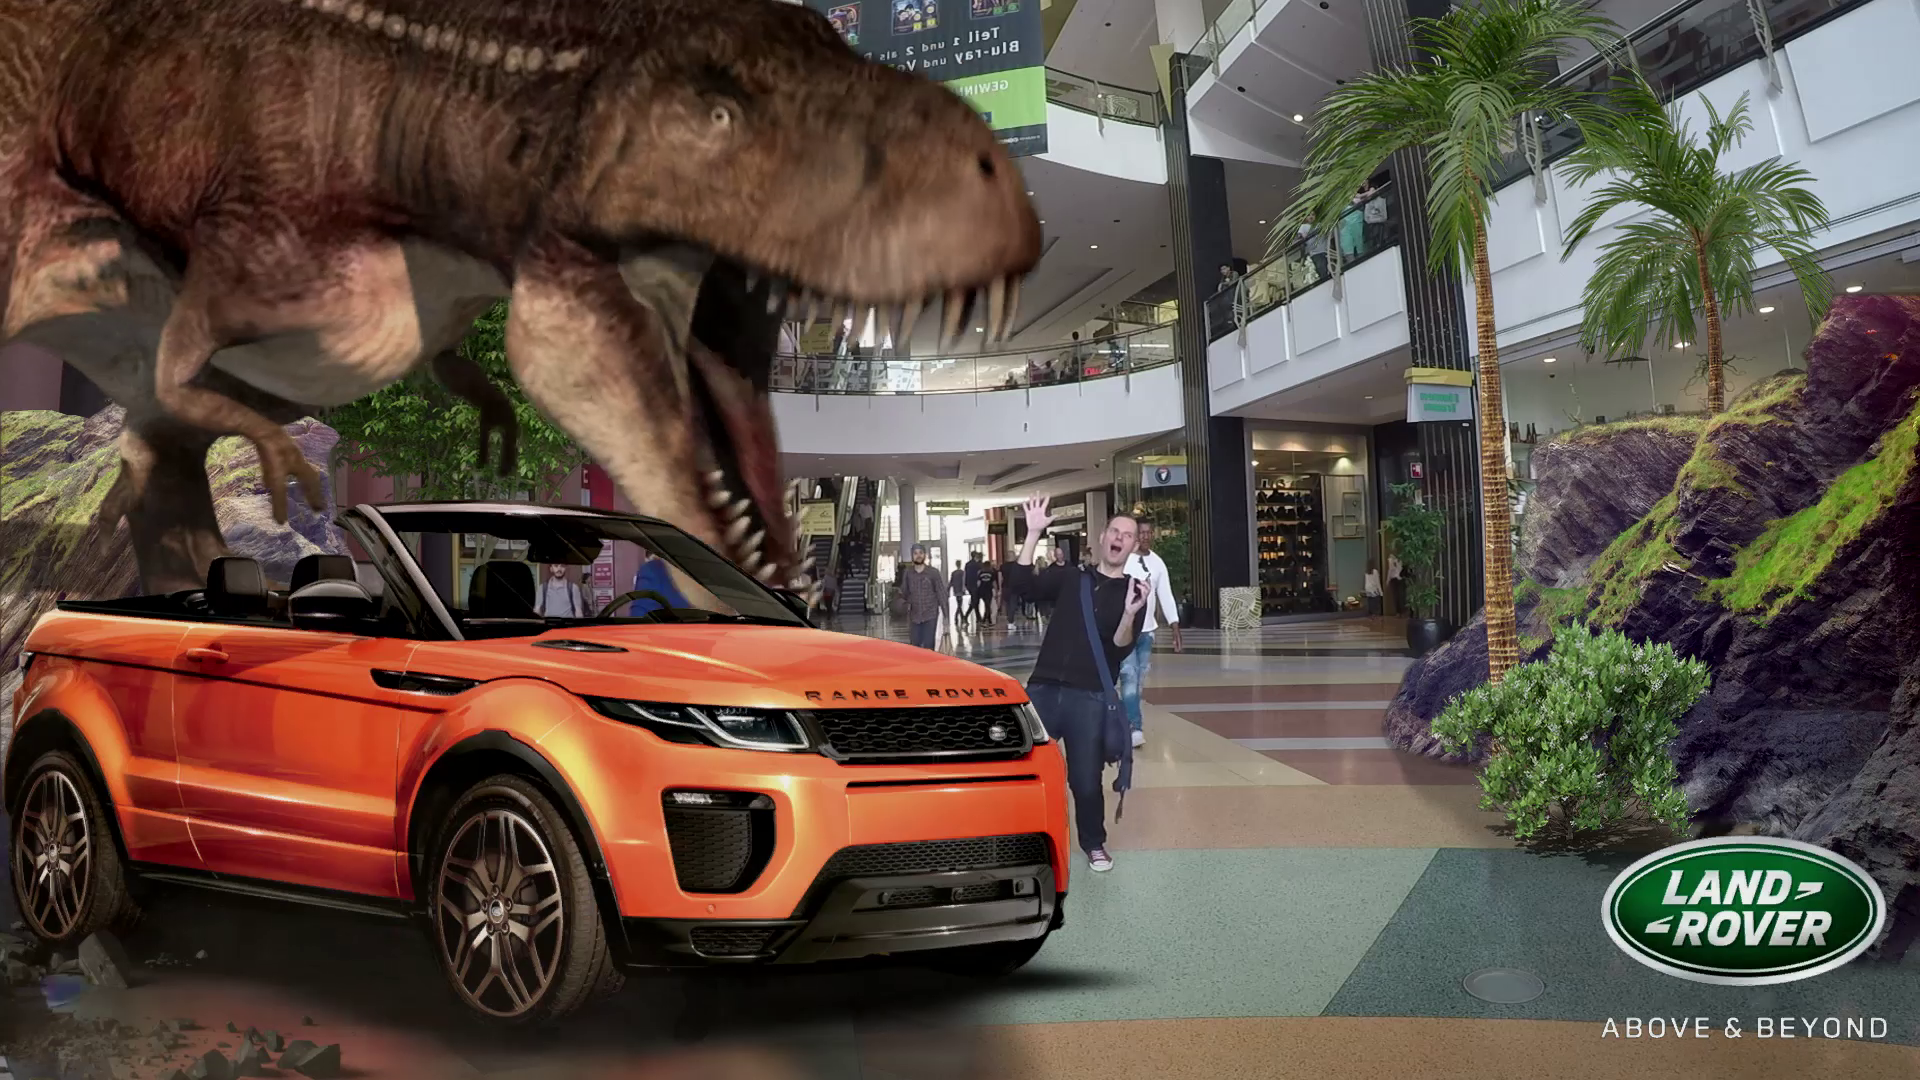 Augmented Reality Advertising Increases Your Brand